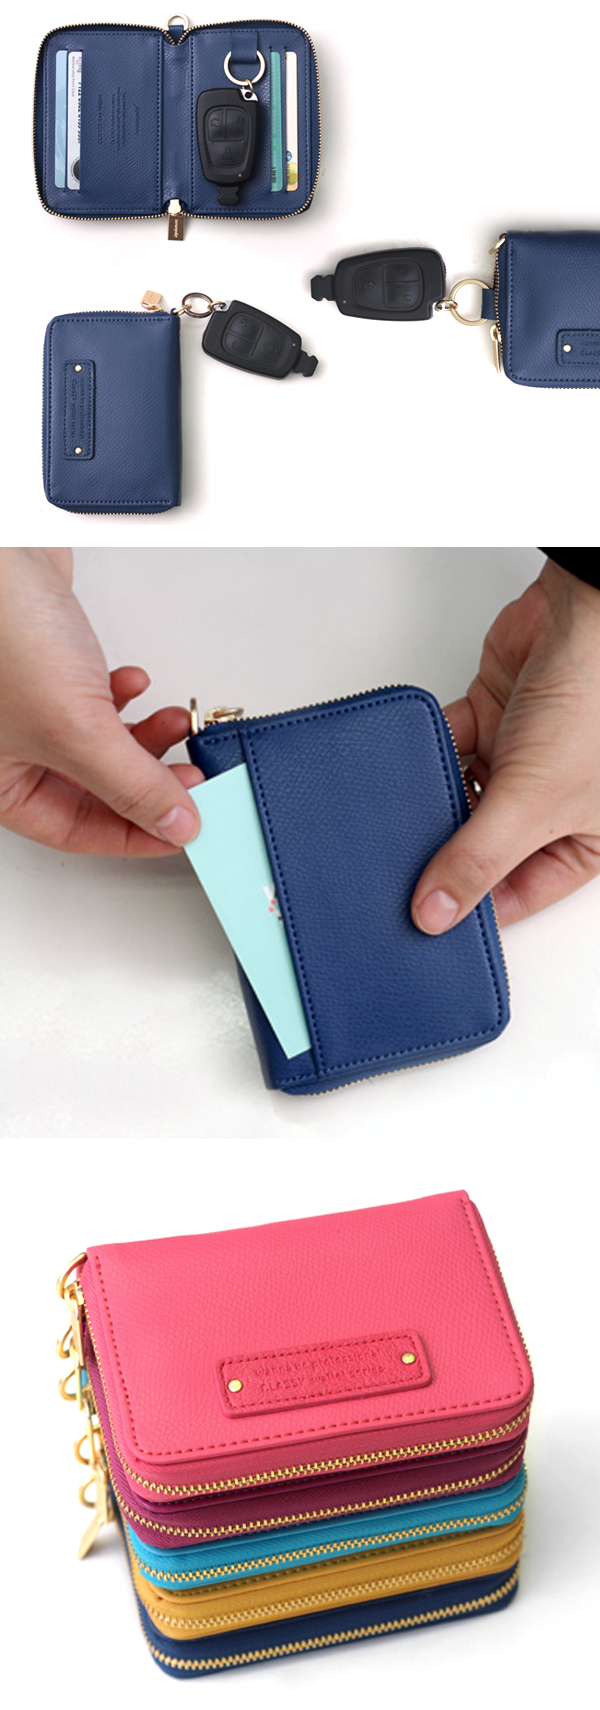 On a simple night outing, quick grocery shopping, or you just like anything simple, the Leather Key Wallet might prove convenient! This wallet is a simple wallet to store your most frequently used cards, and your car or house keys safely inside. You won't have to worry about carrying multiple things at once.